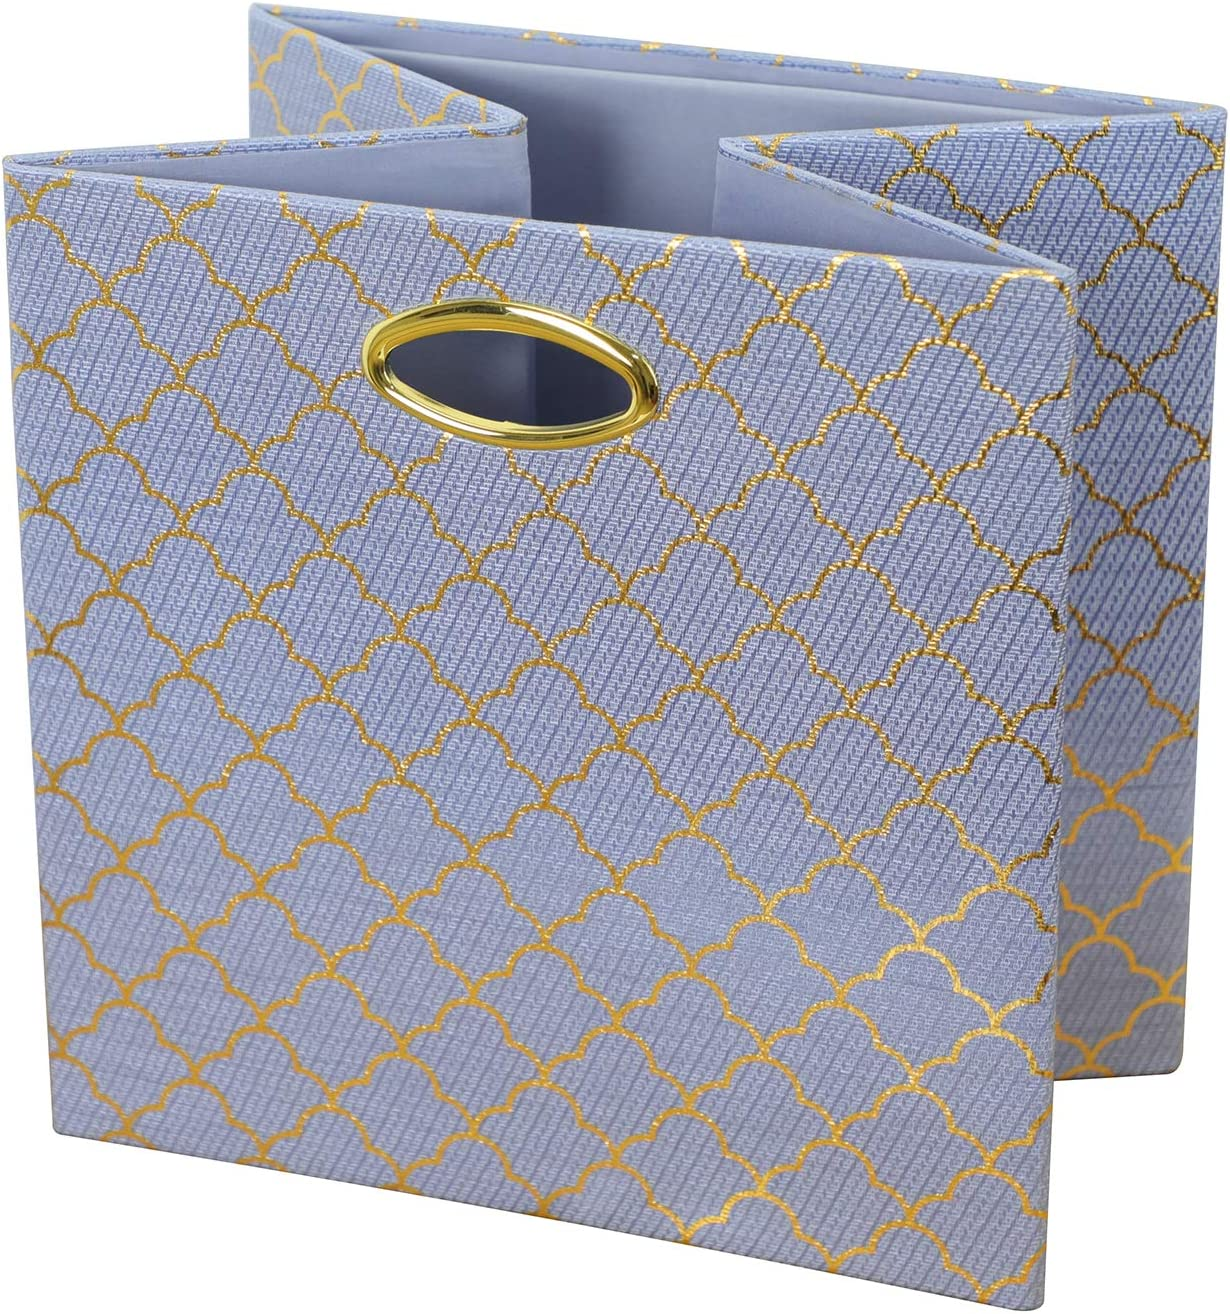 2pcs, Lotus Leaf lace-Blue Posprica Storage Bins Storage Cubes,13/×13 Fabric Drawers Organizer Basket Boxes Containers